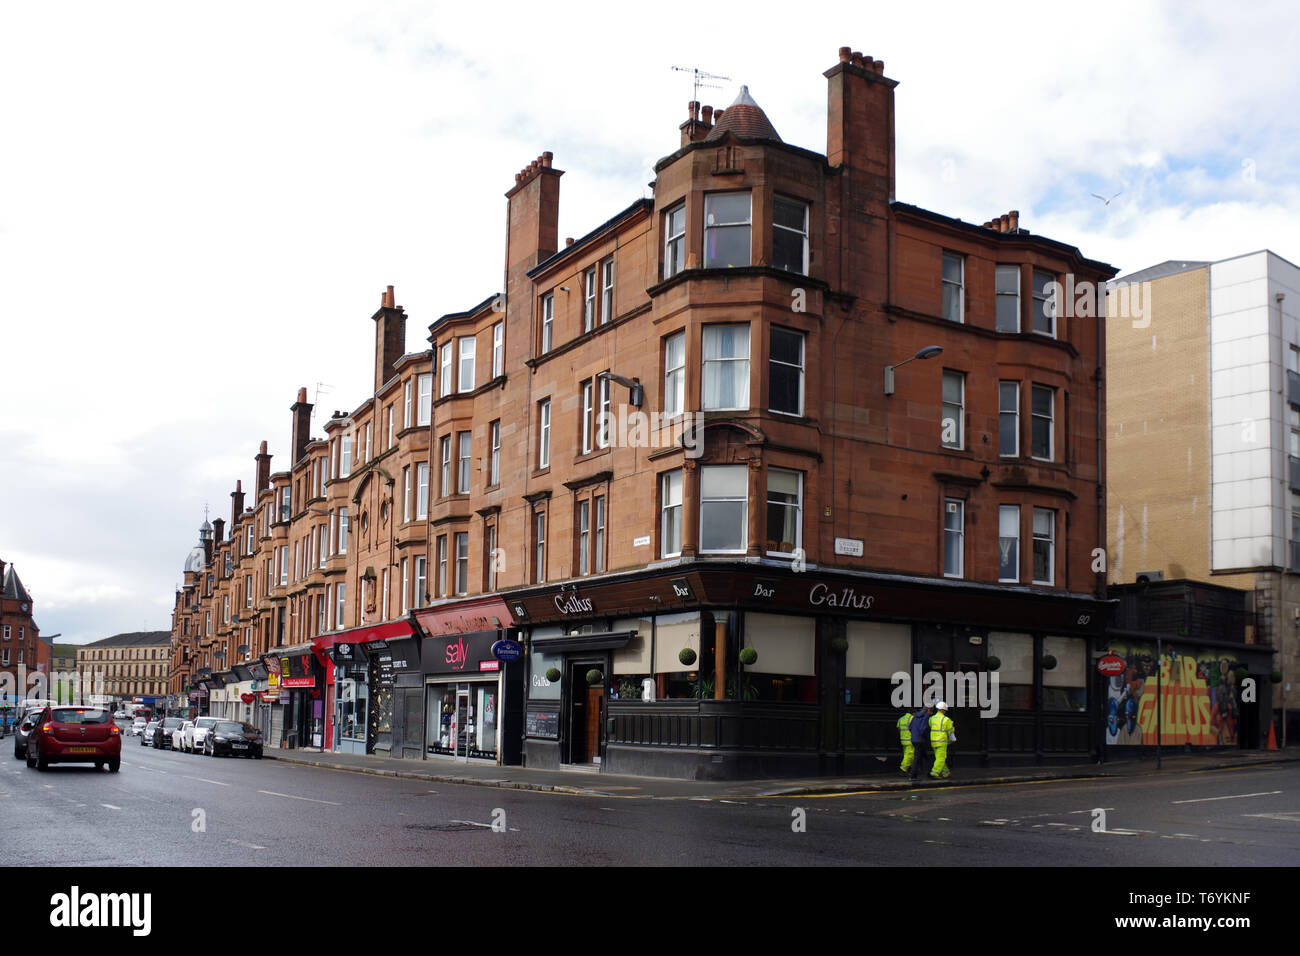 tenement flats in Partick on Dumbarton Road, Glasgow - Stock Image